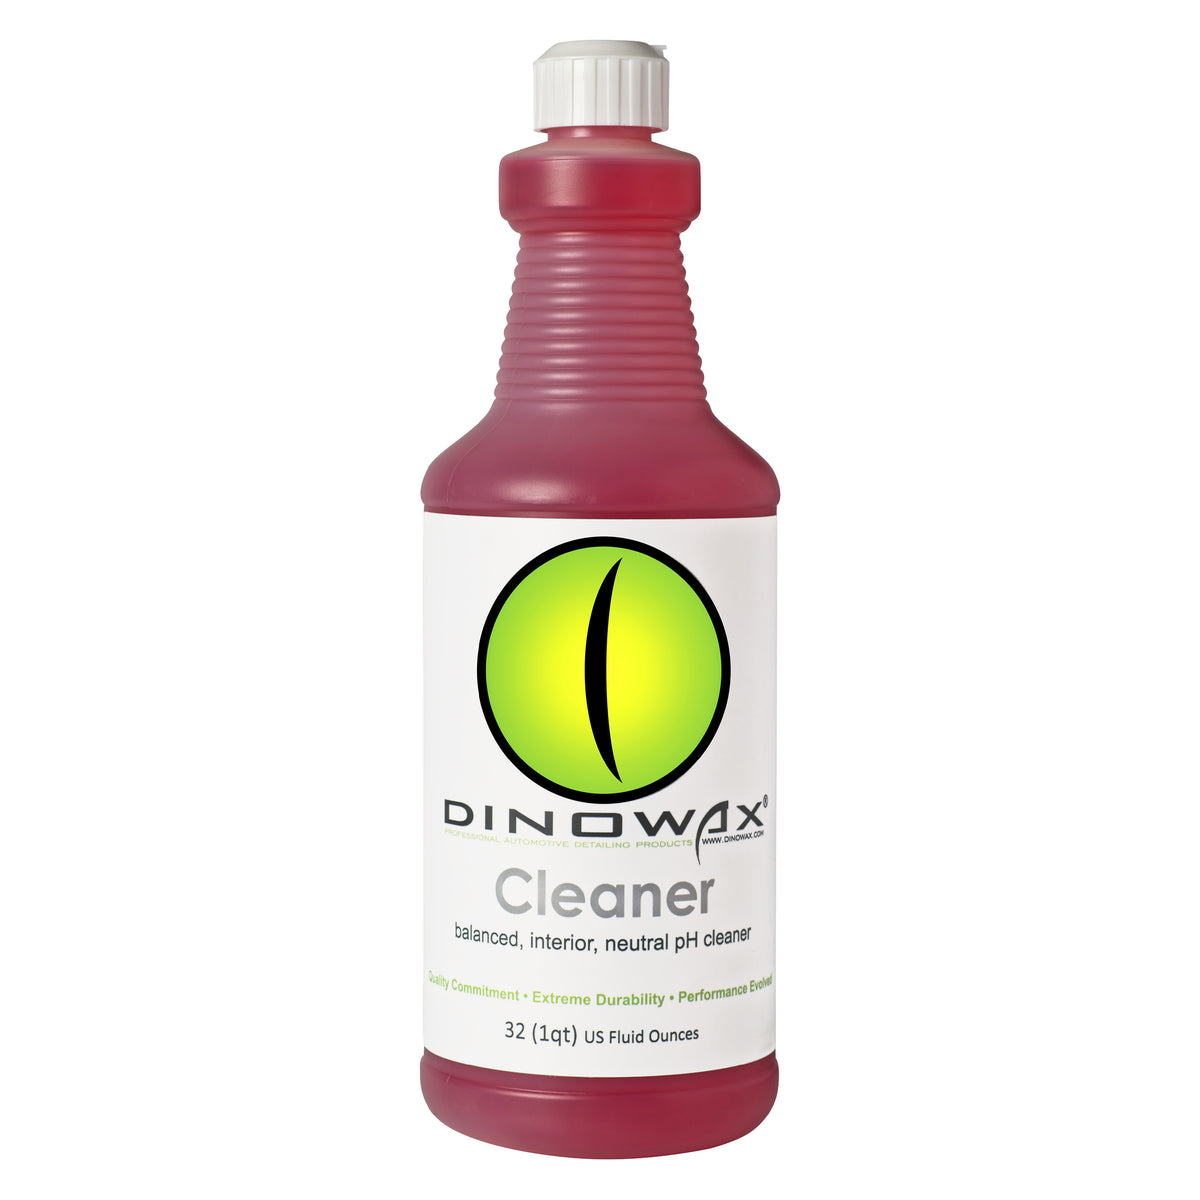 Dinowax Cleaner for cars